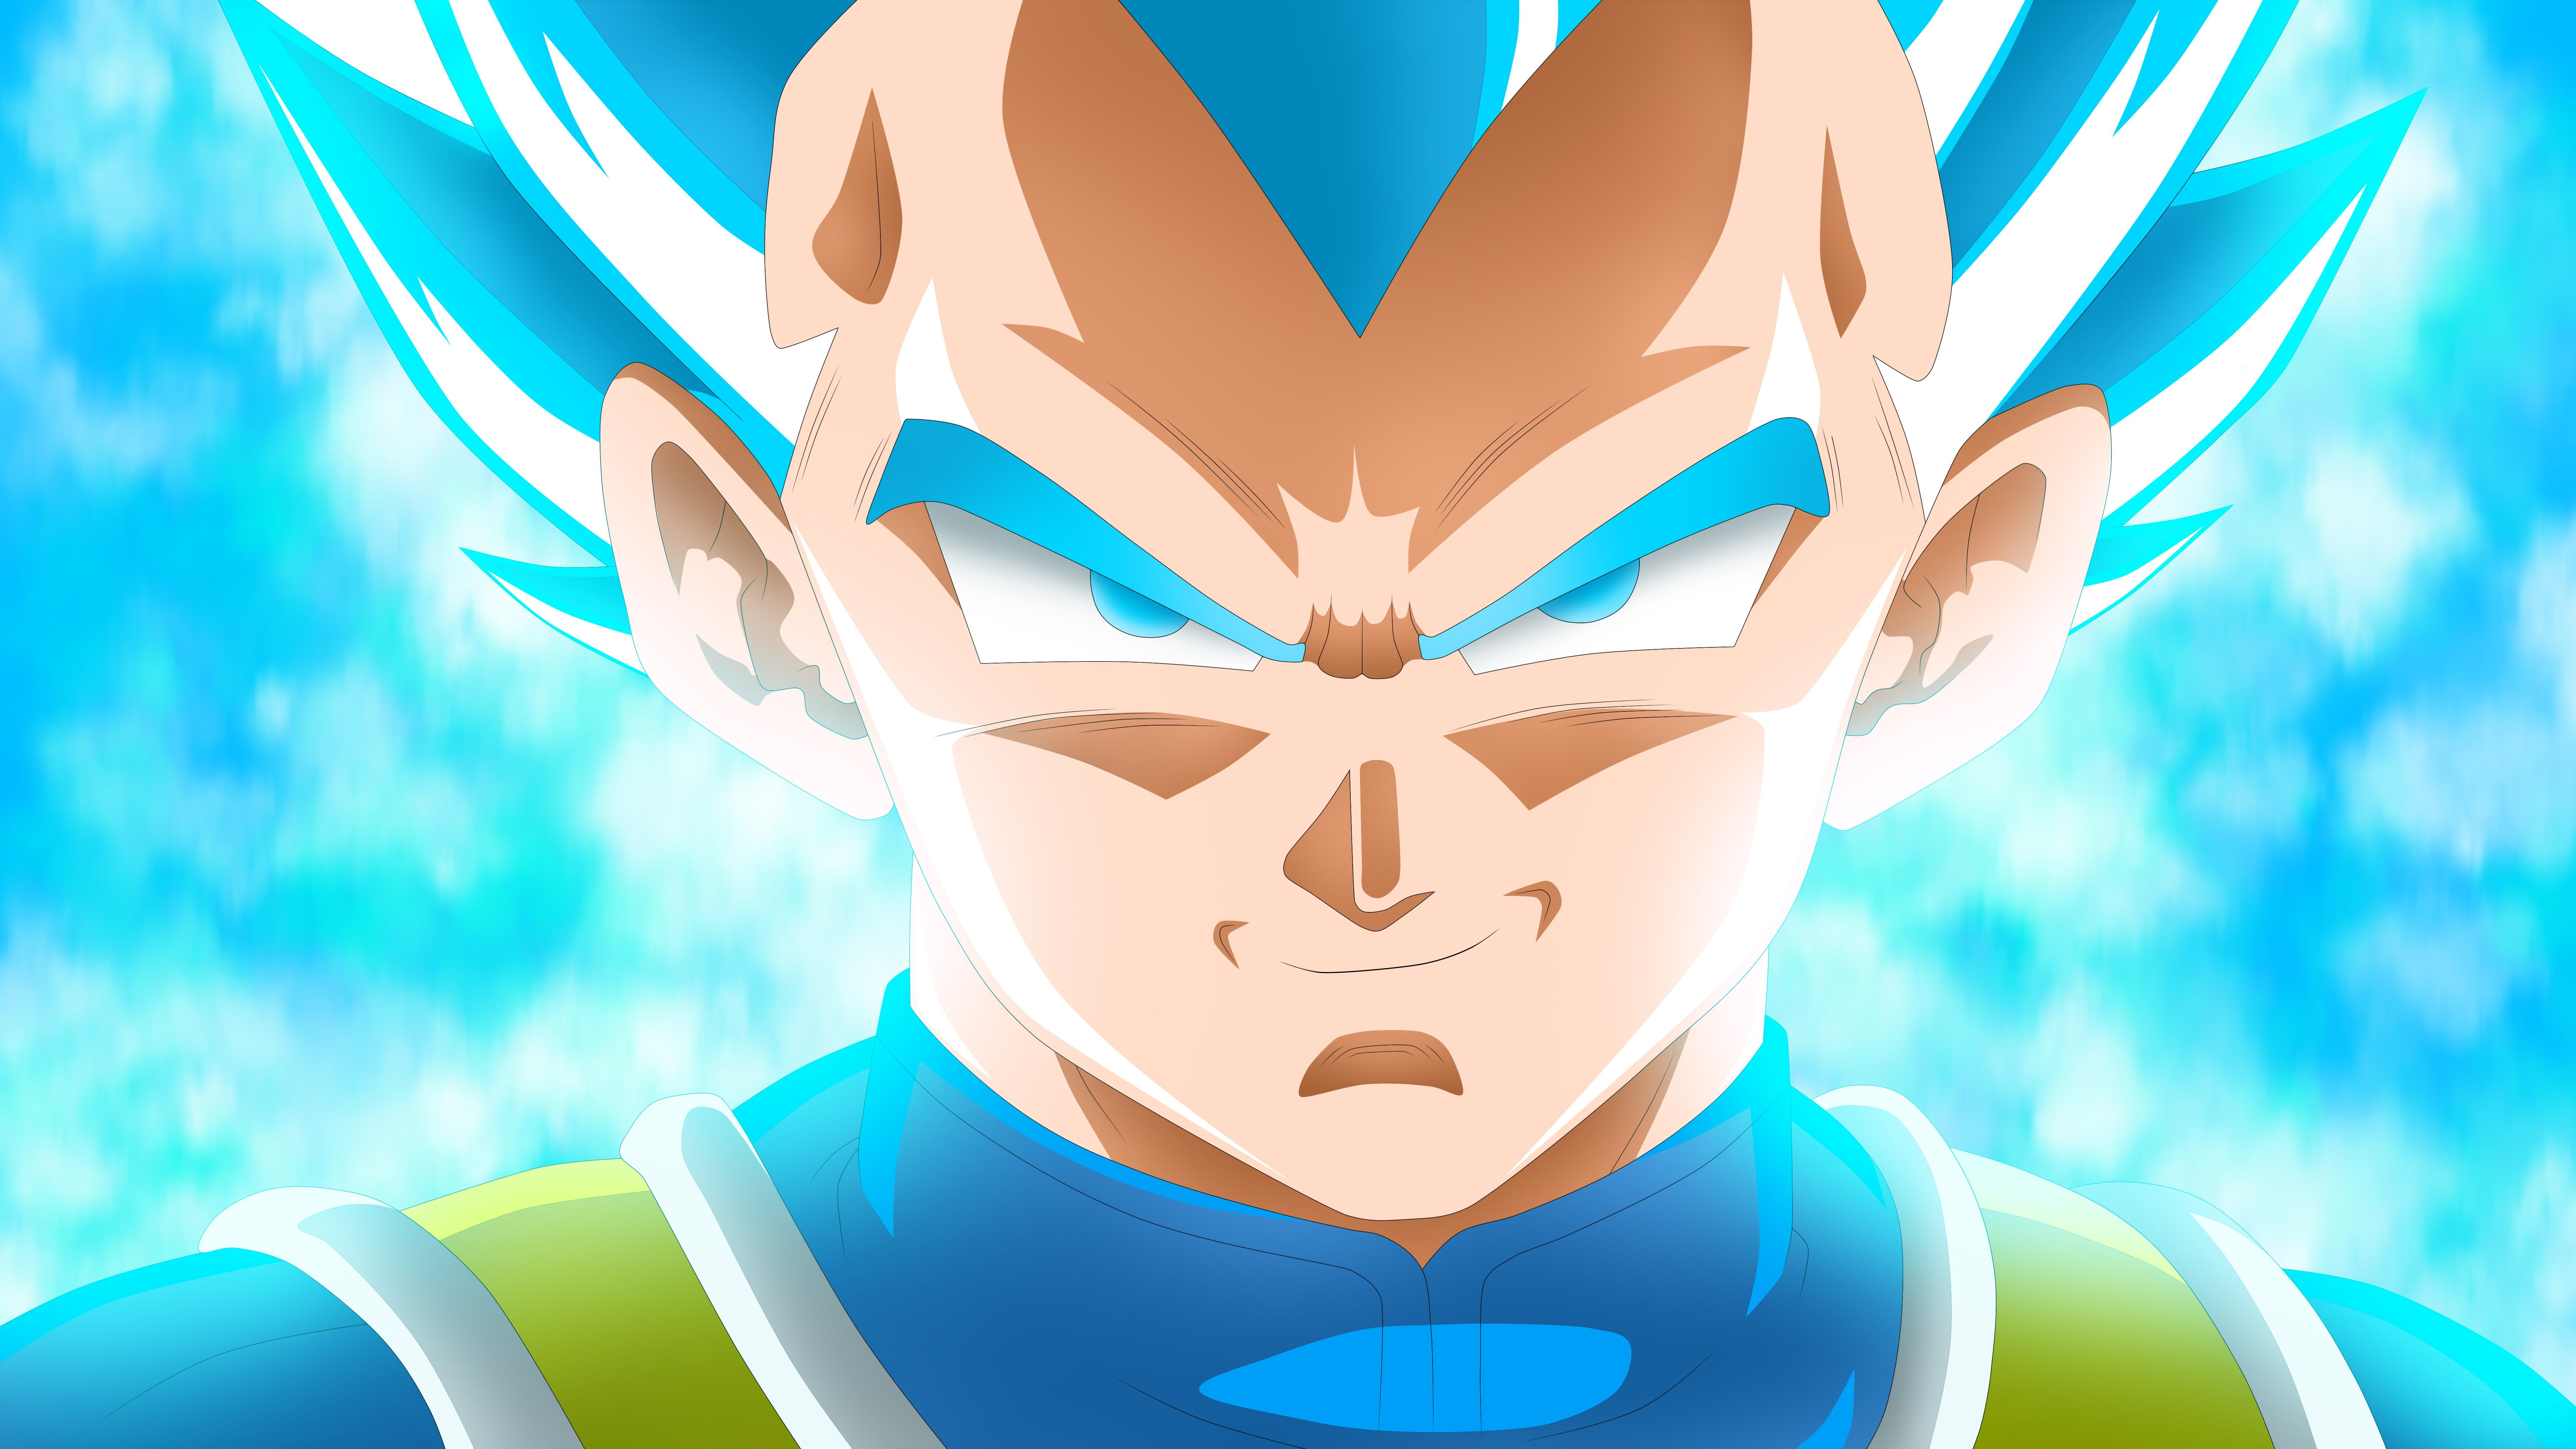 Anime dragon ball goku piccolo hd anime 4k wallpapers images backgrounds photos and pictures - Dragon ball super wallpaper 1080x1920 ...